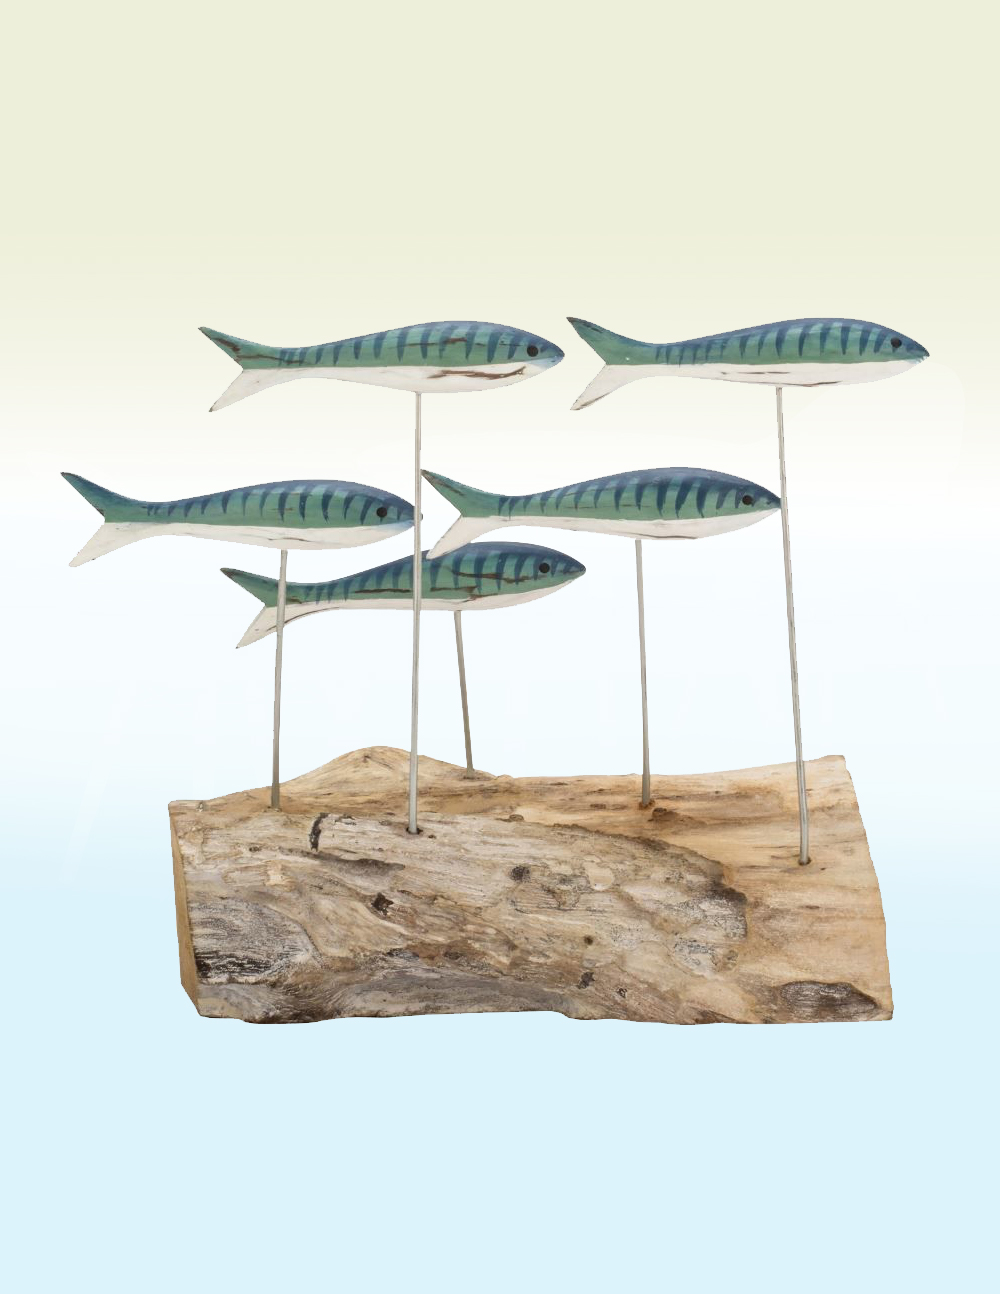 N323 Archipelago Mackerel Shoal Fish Wooden Sculpture 18cm Long | Avant Garden